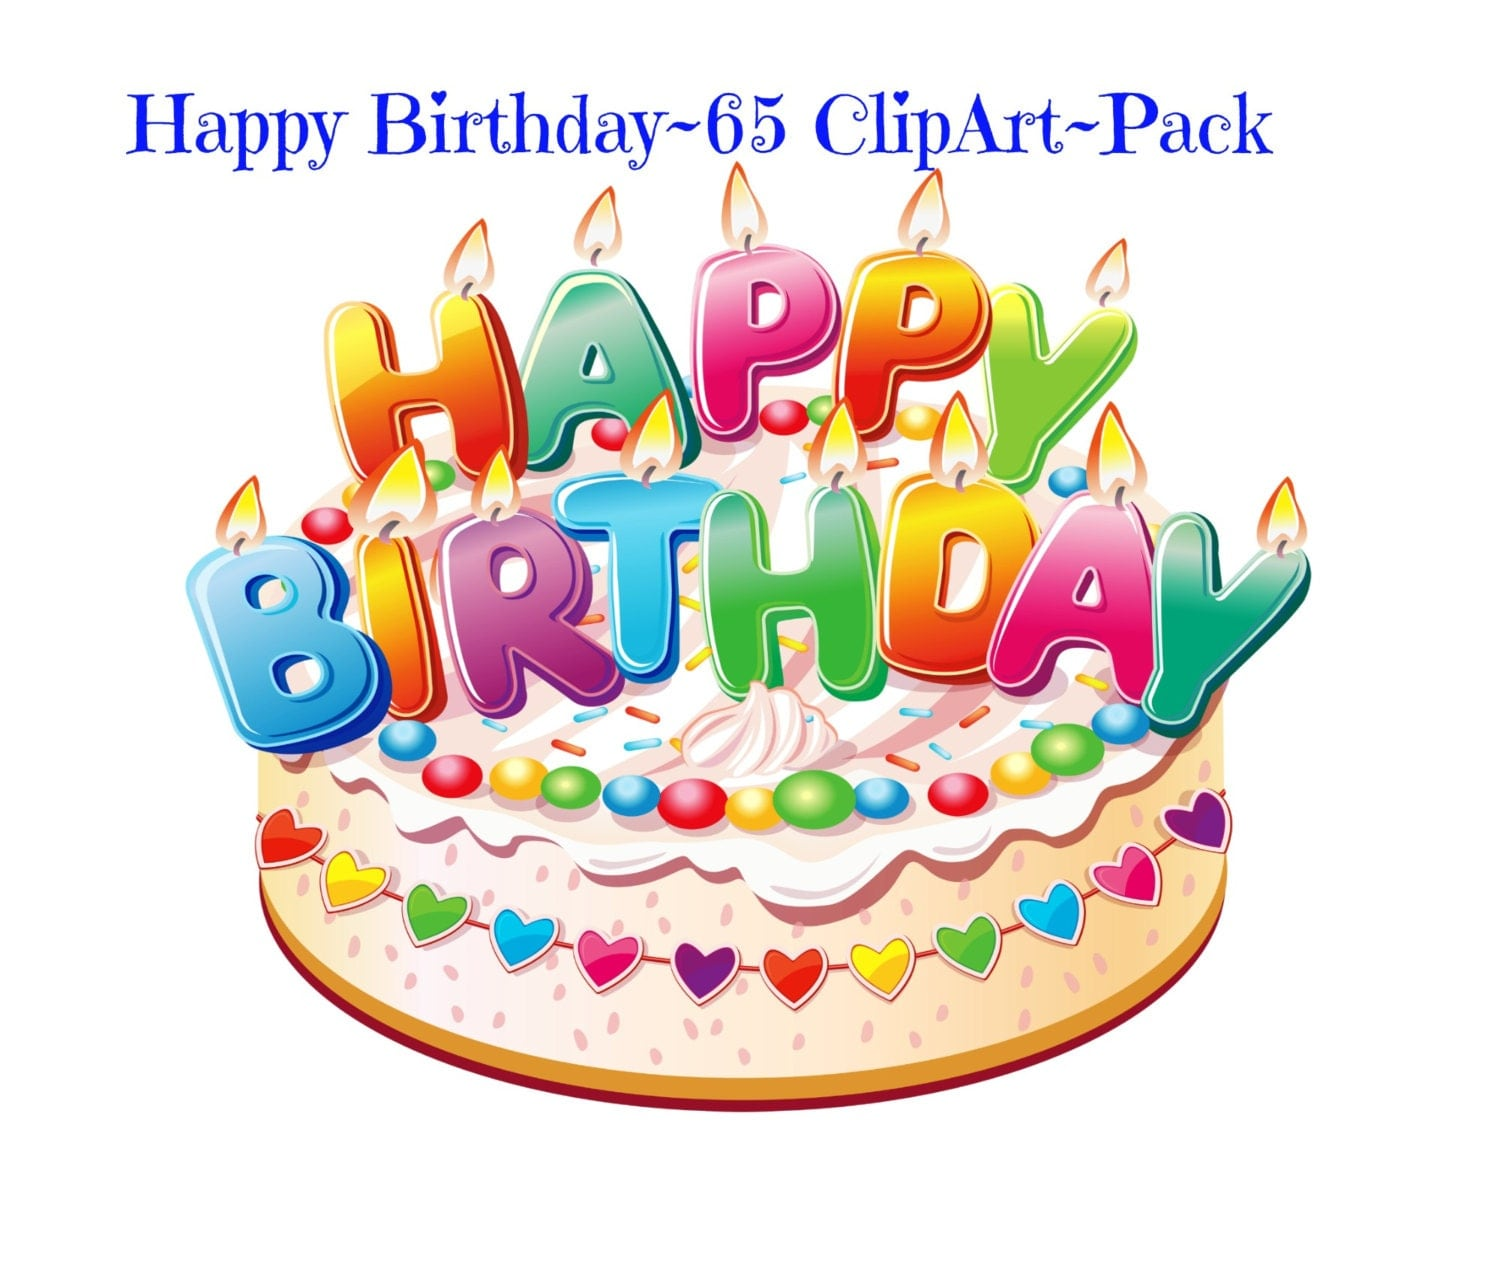 Happy Birthday Clipart 65 pack Cliparts Large